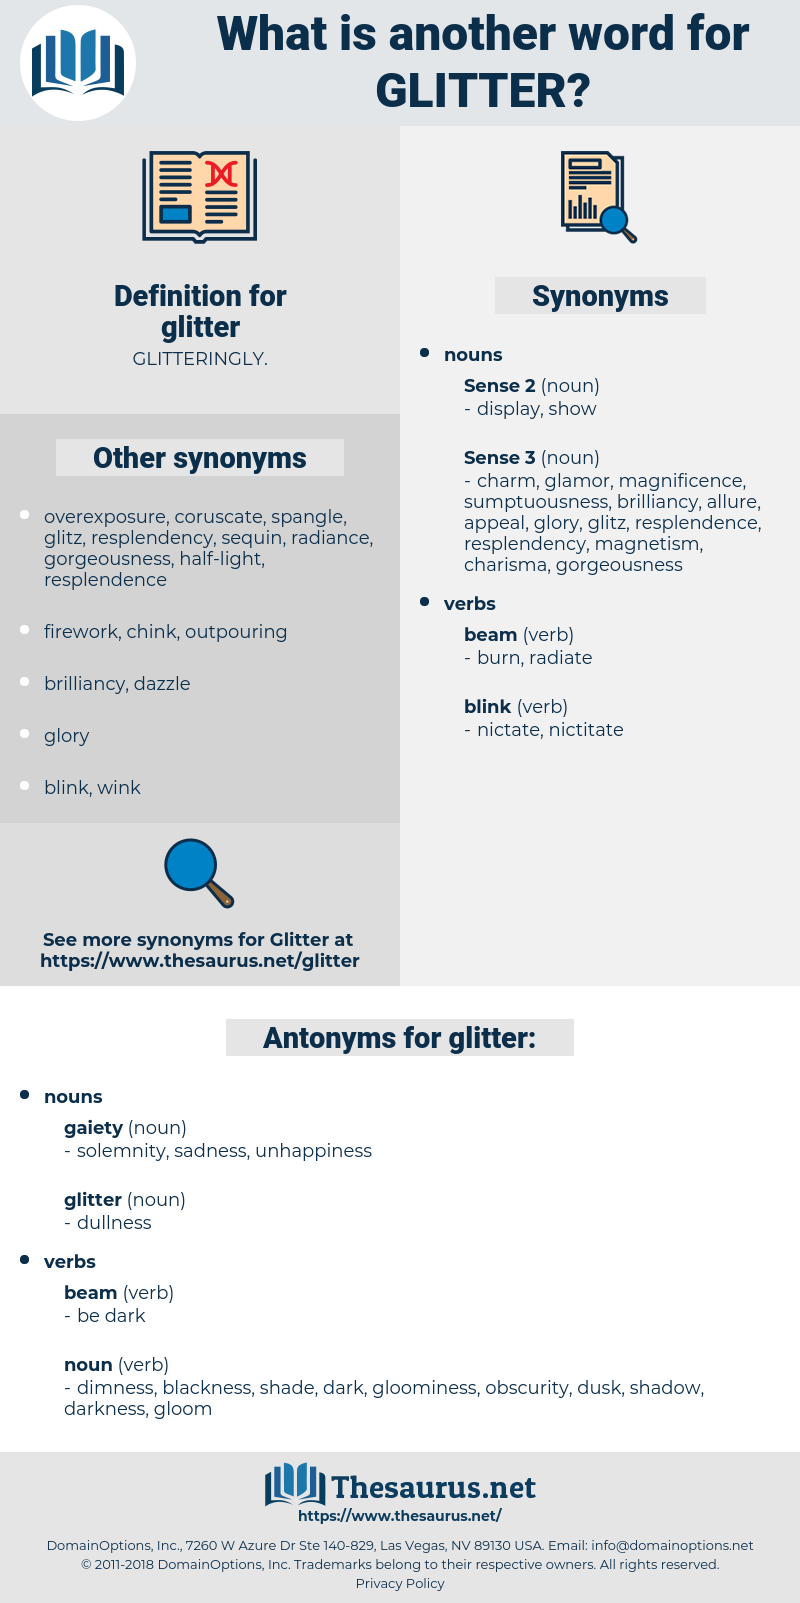 glitter, synonym glitter, another word for glitter, words like glitter, thesaurus glitter